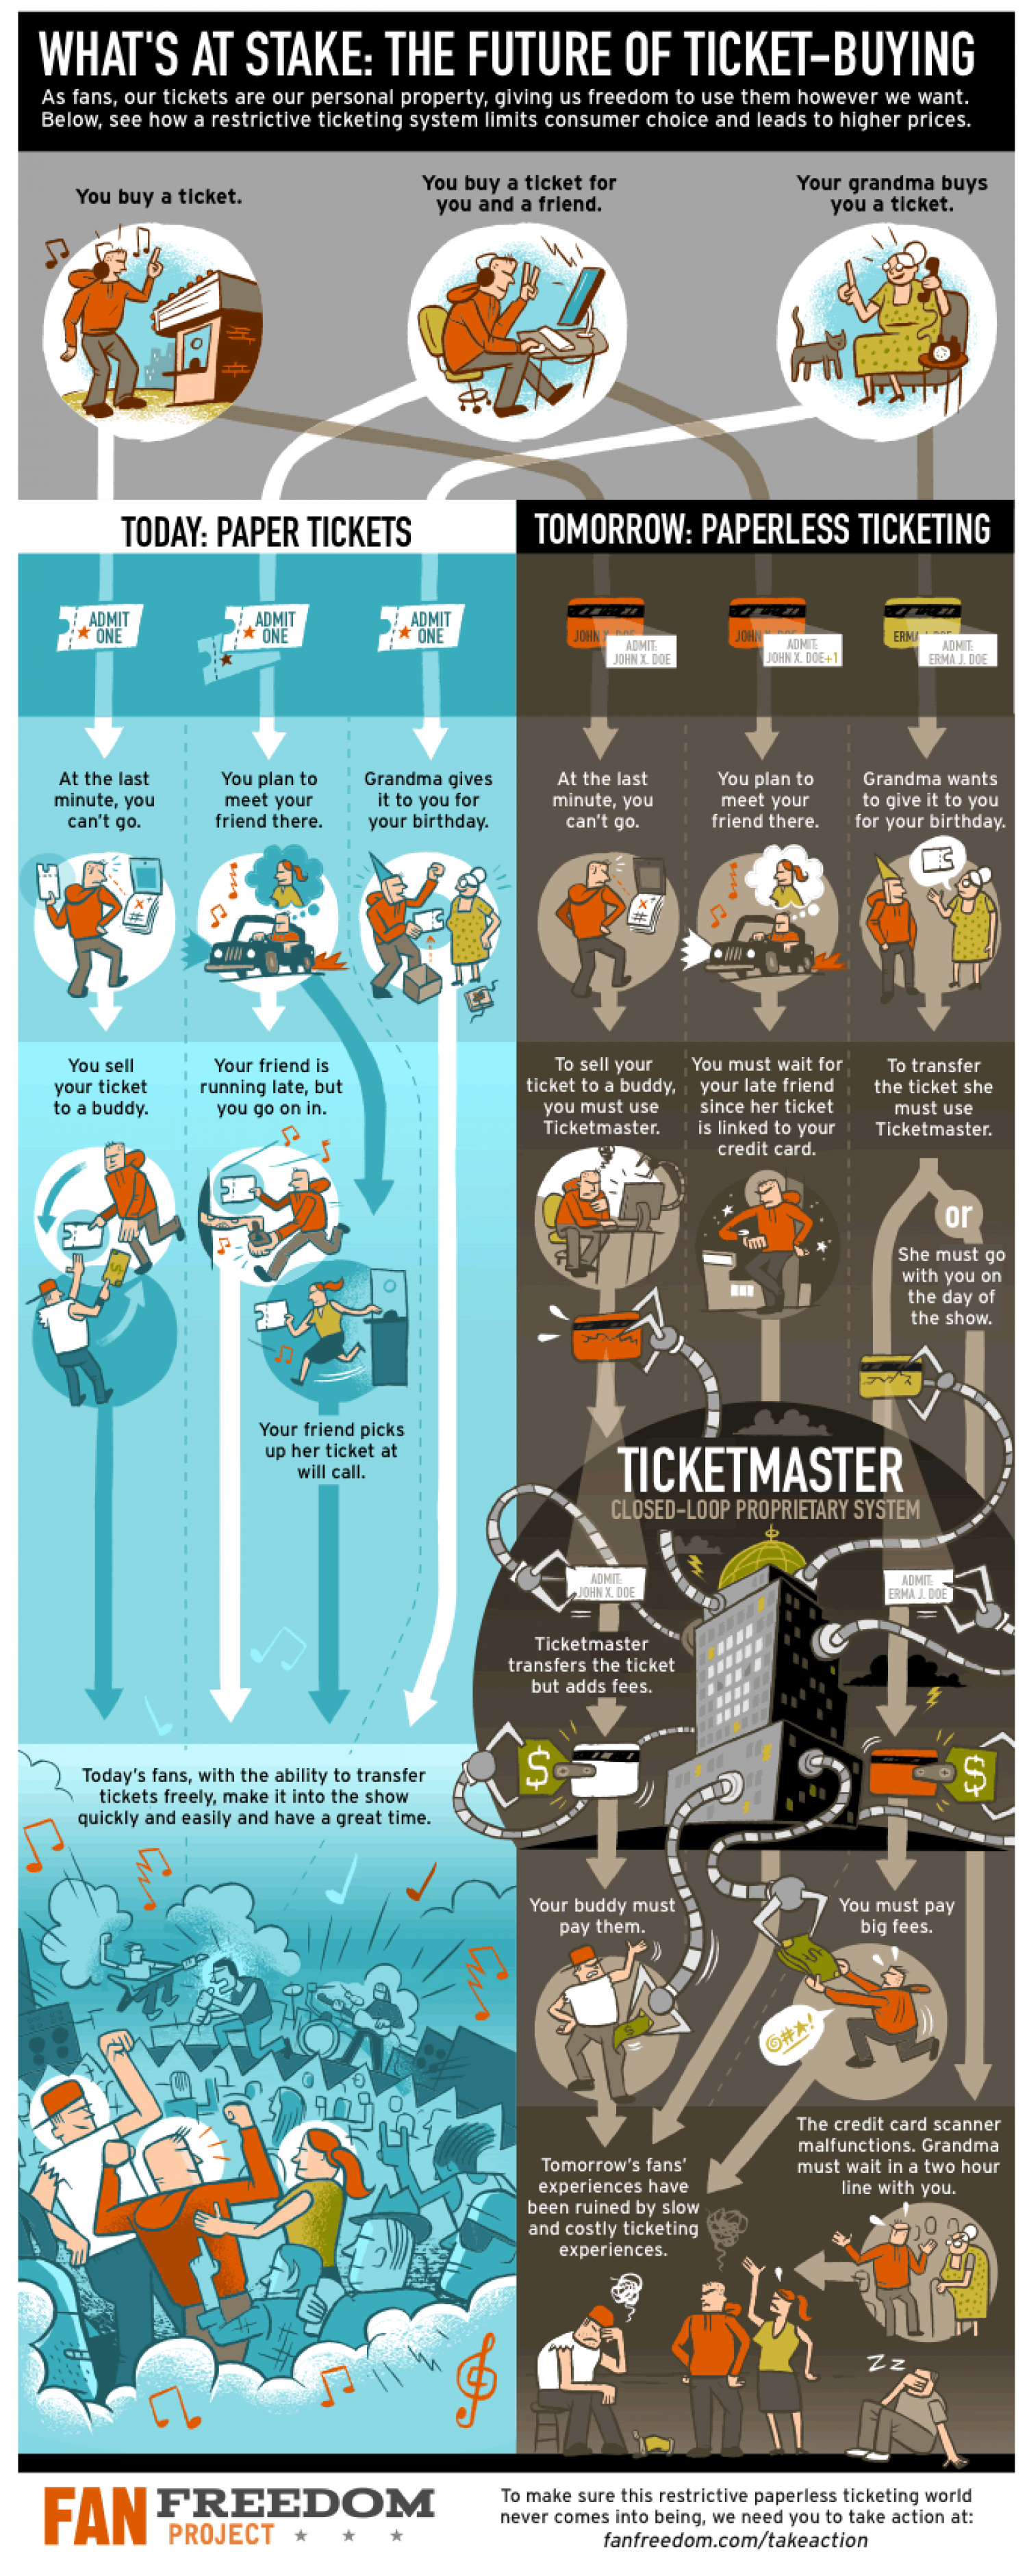 The Future of Ticket-Buying Infographic